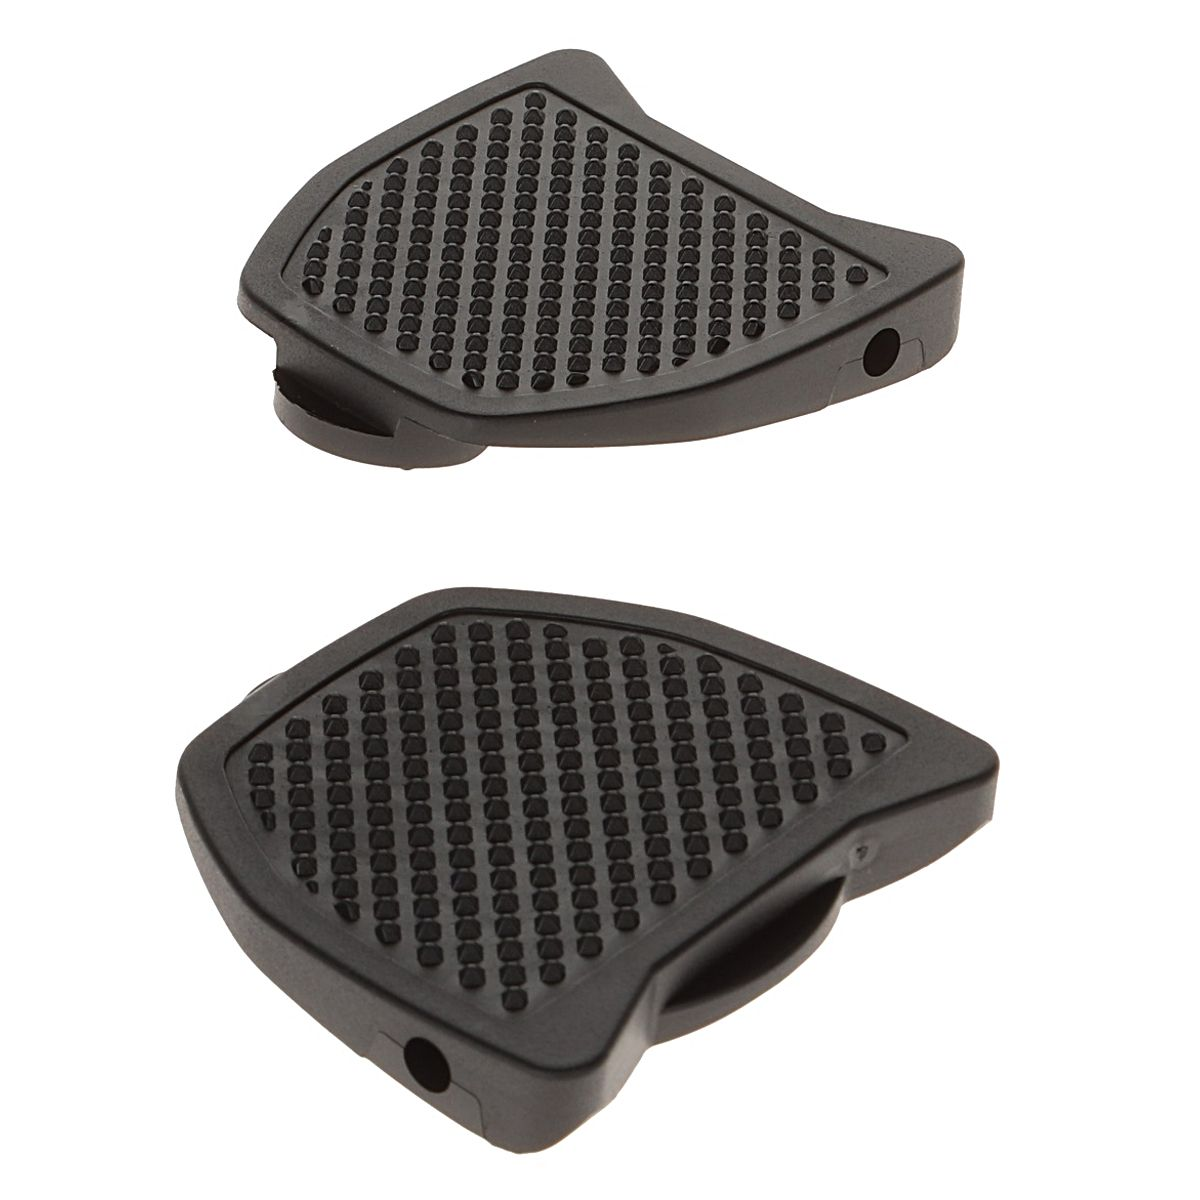 Pedal Plate Pedal Plates for Clipless Shimano SPD-SL Pedals | Pedals